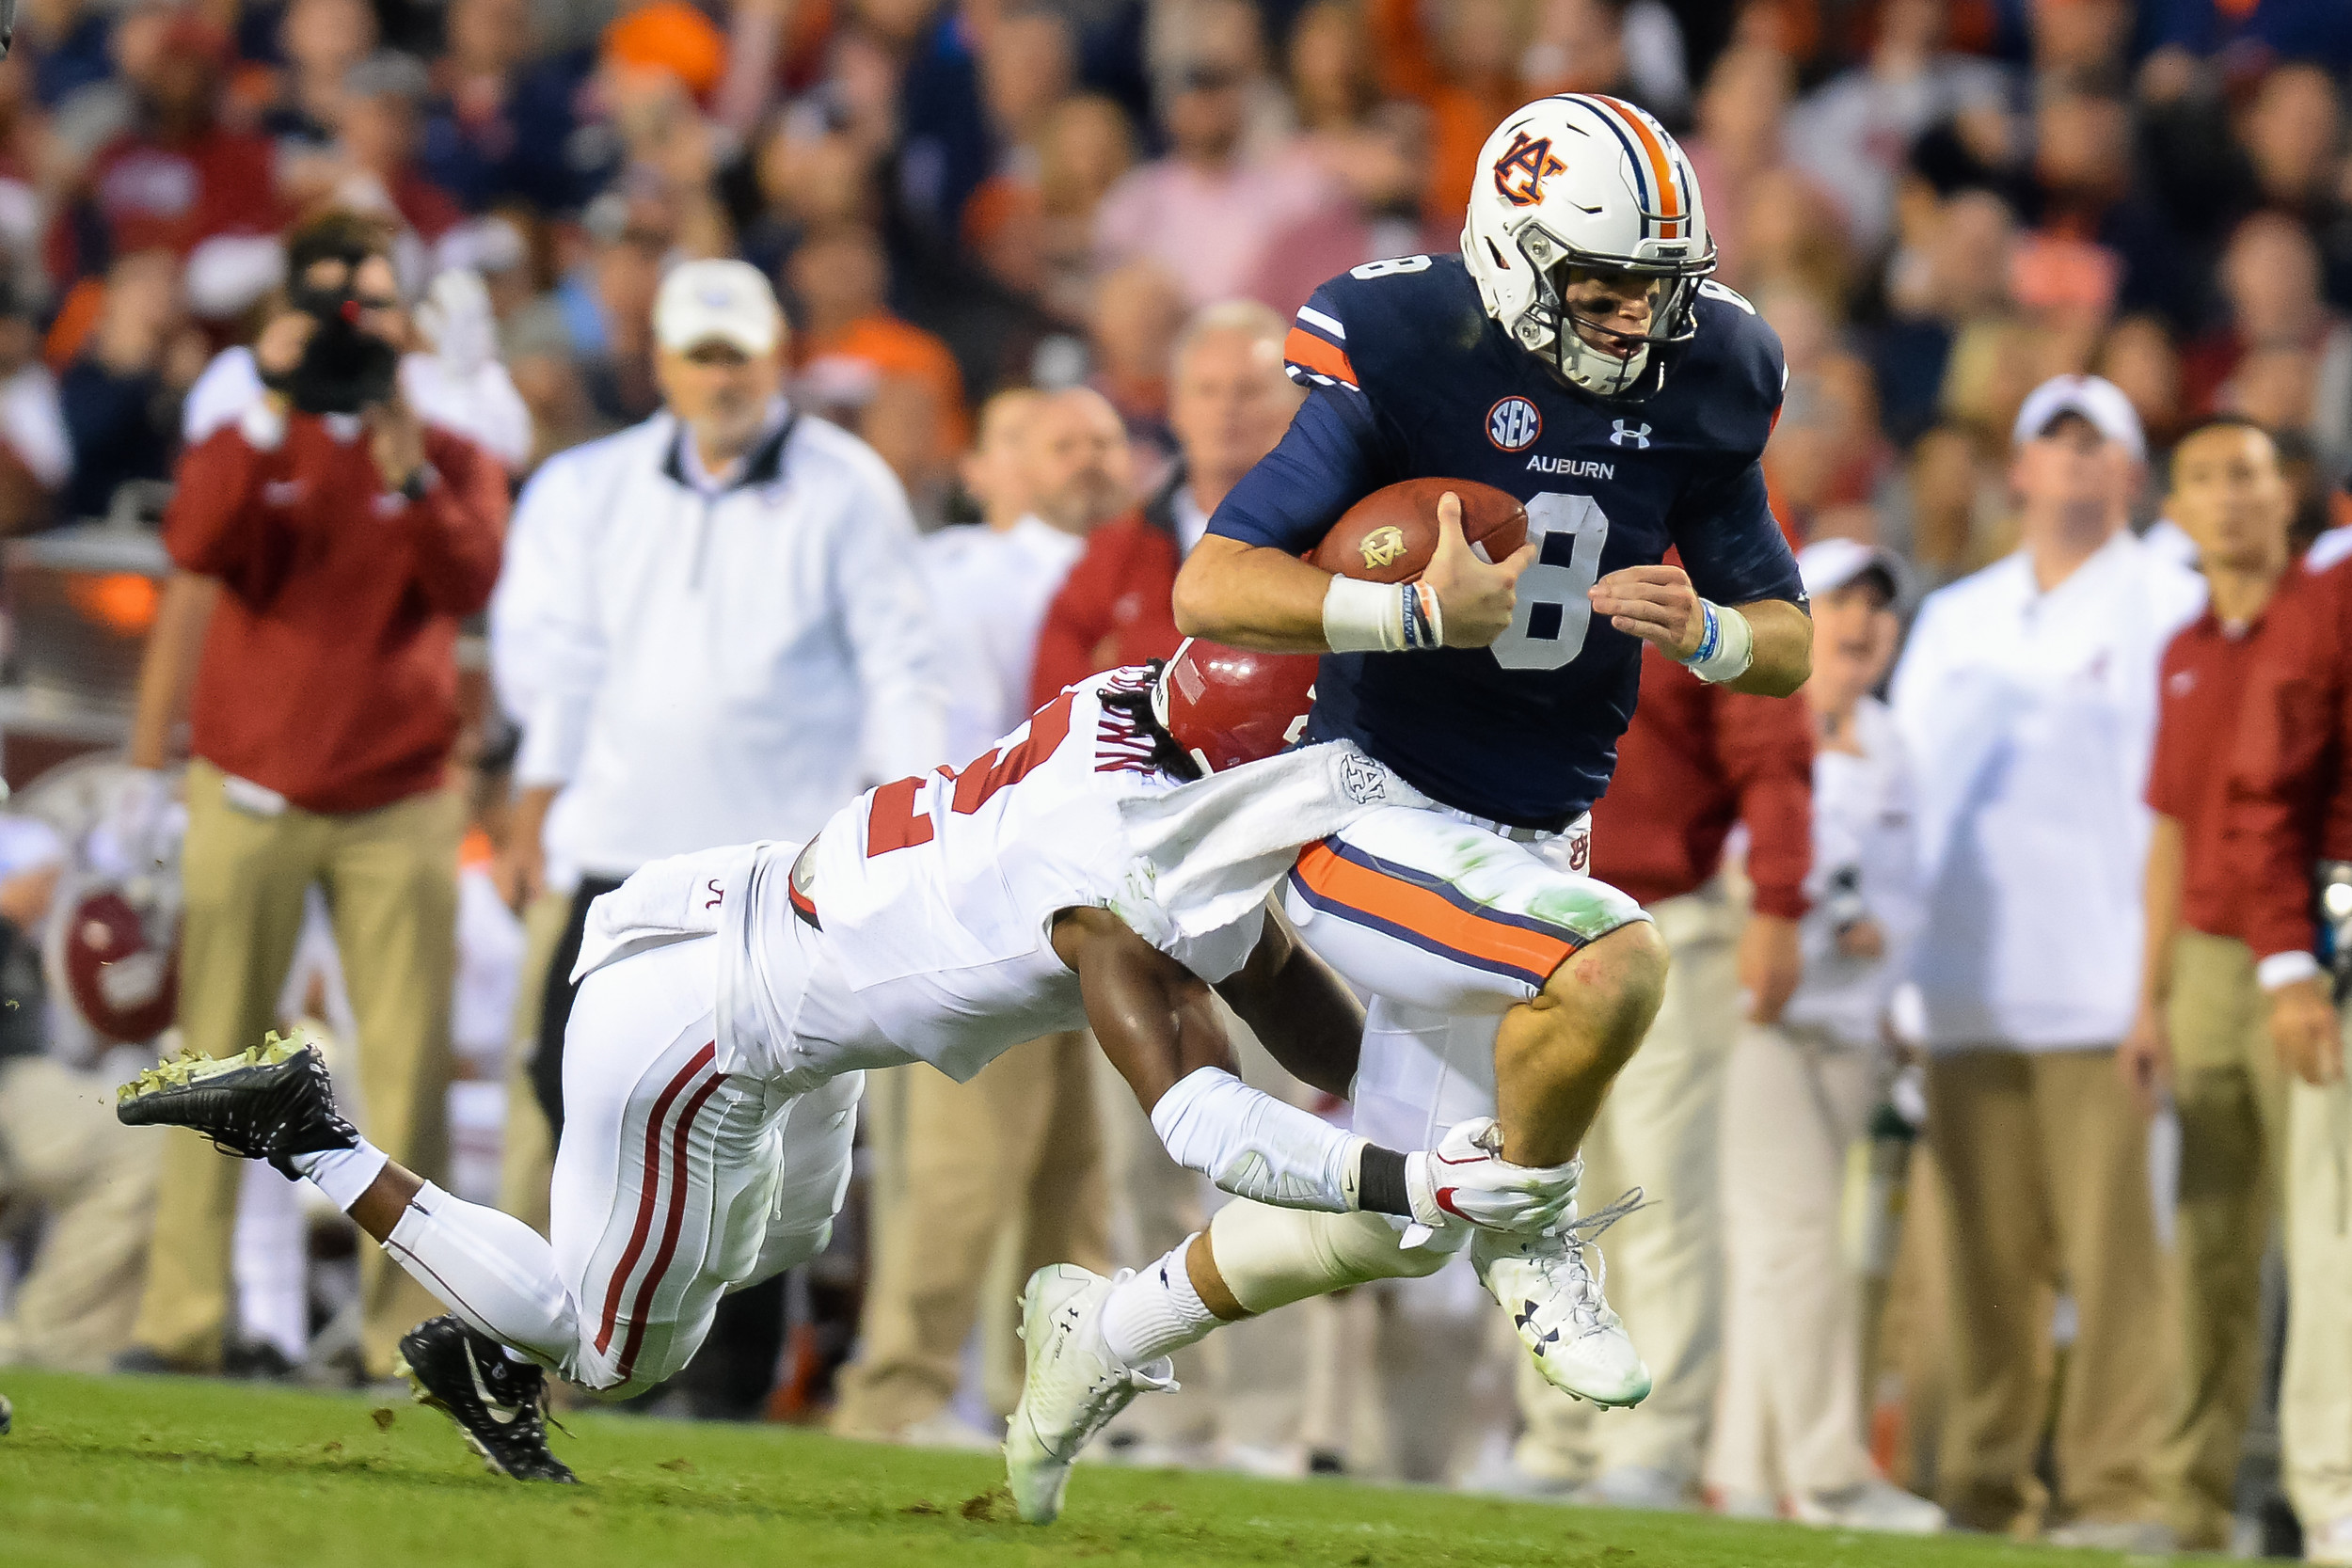 Alabama Crimson Tide defensive back Tony Brown (2) runs down Auburn Tigers quarterback Jarrett Stidham (8) during the second half of Saturday's game, at Jordan-Hare Stadium.